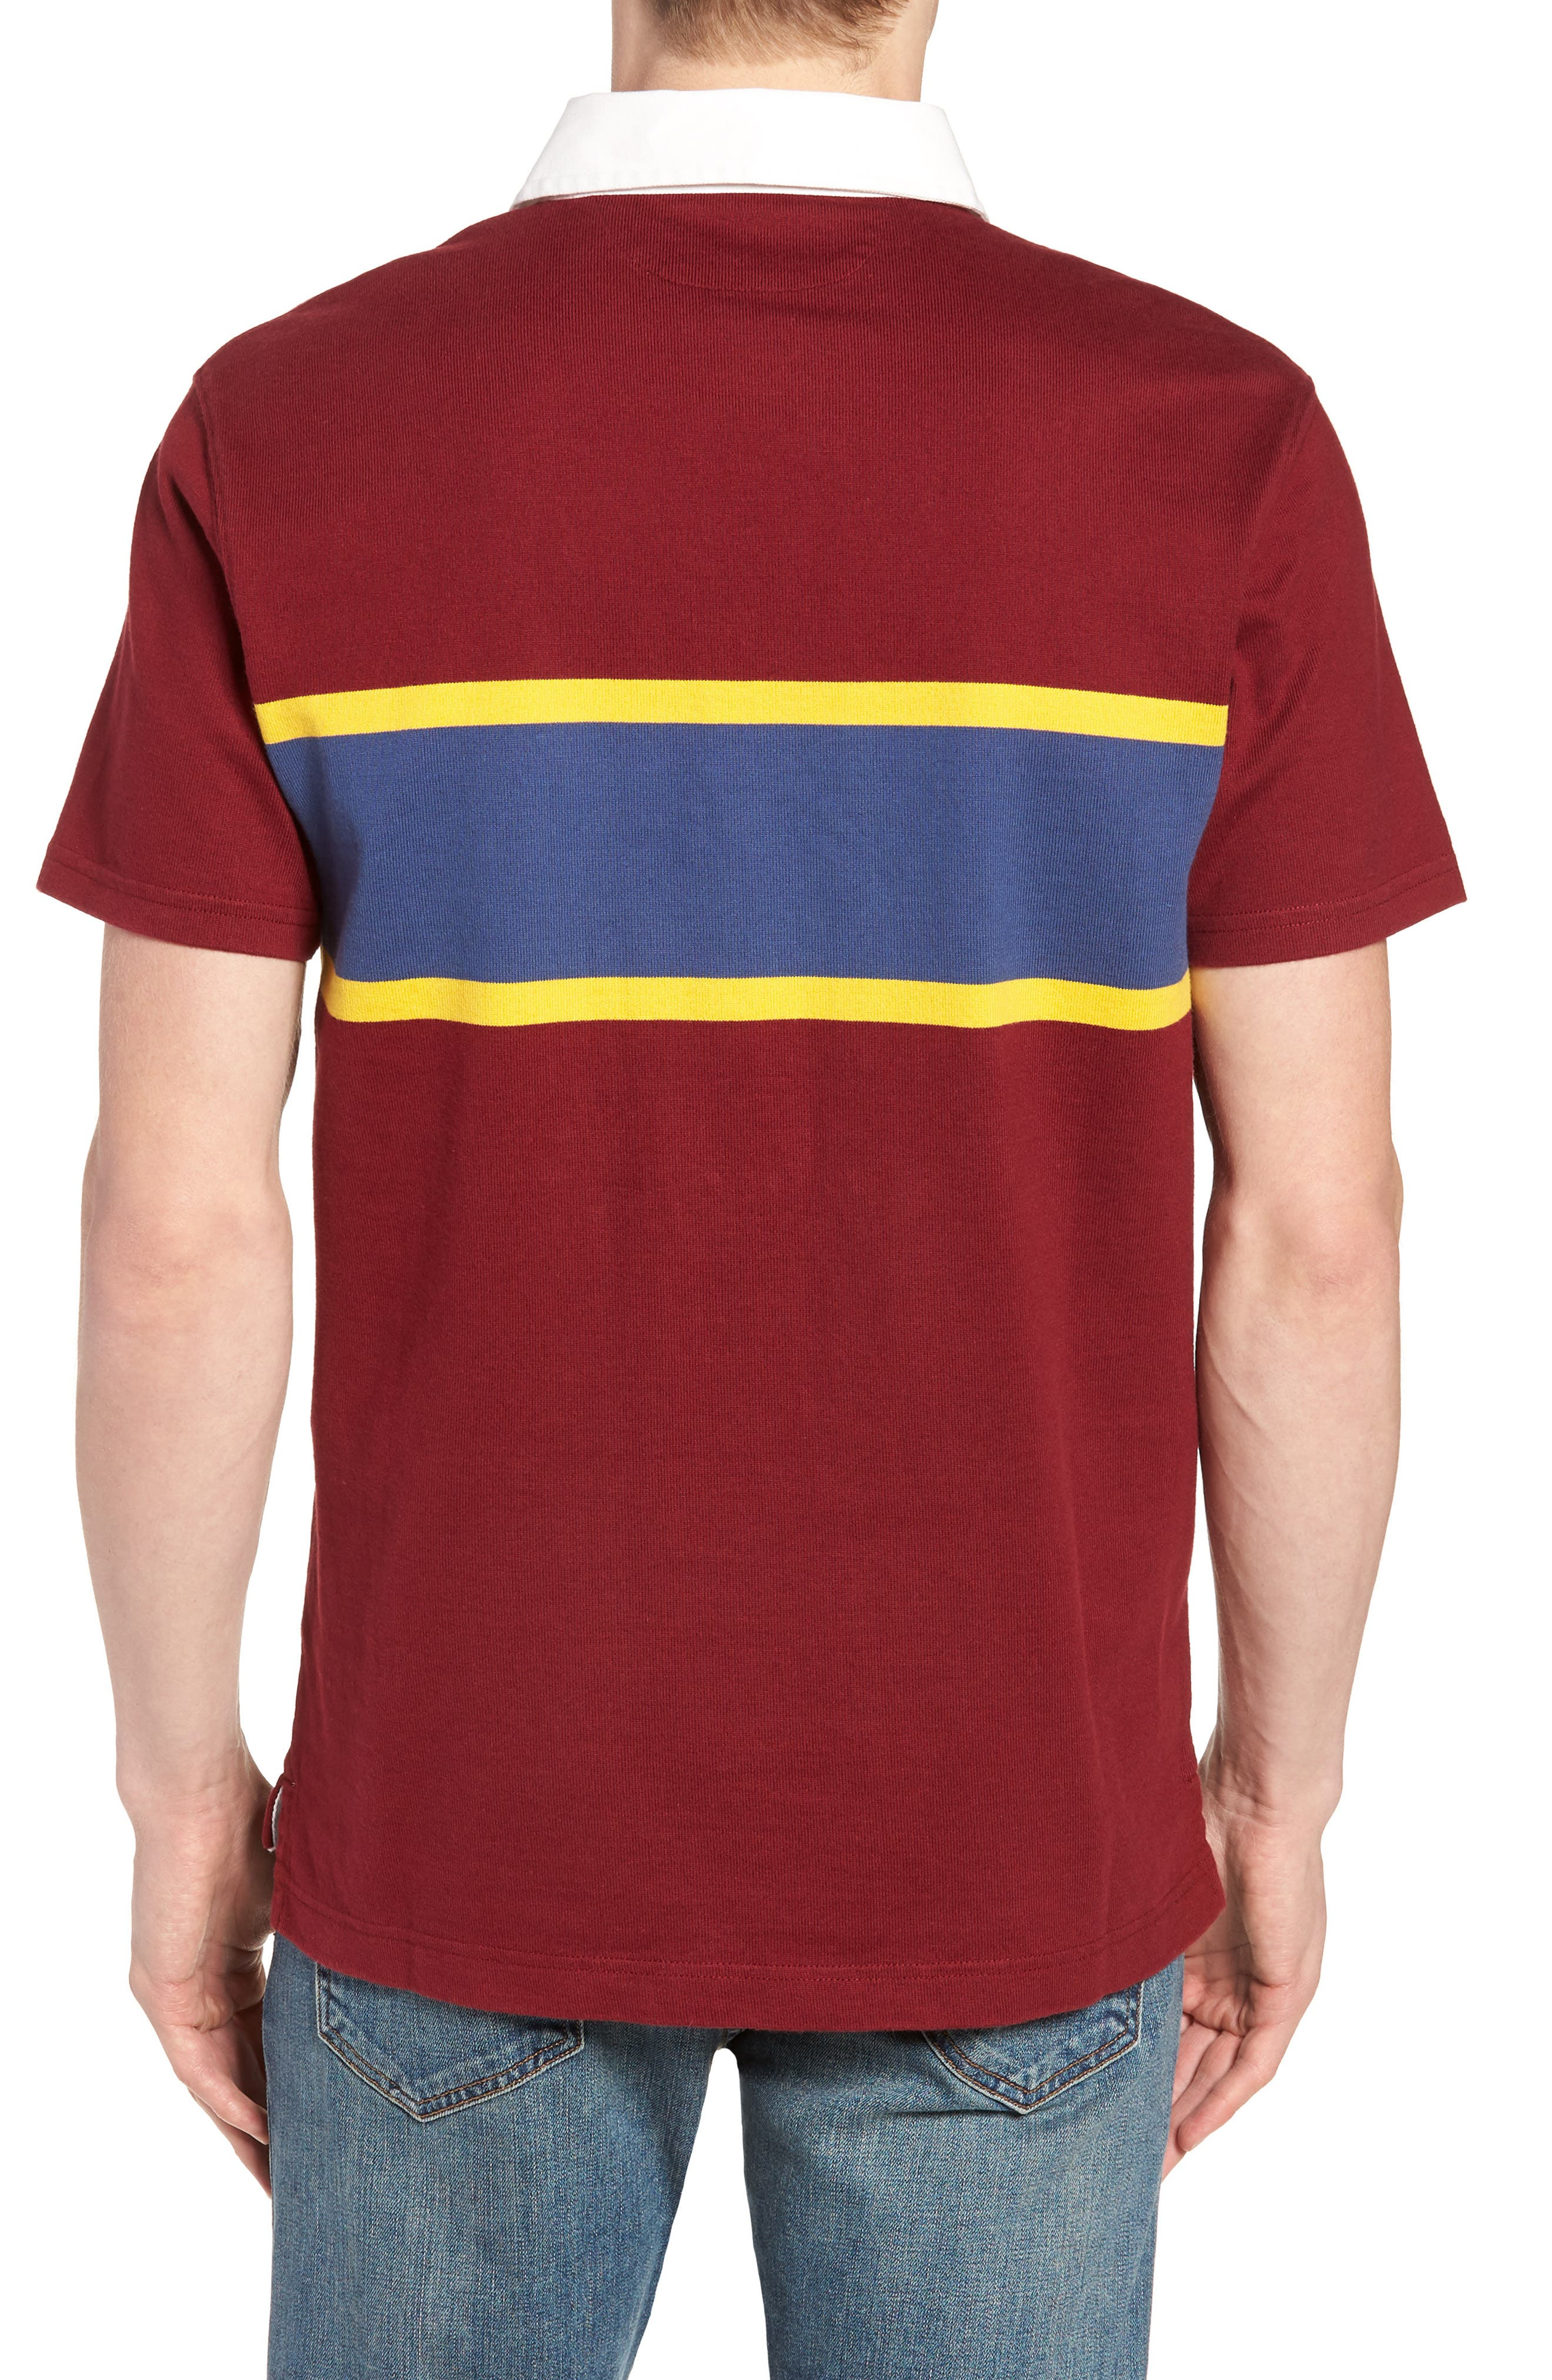 1984 Rugby Shirt,                             Alternate thumbnail 2, color,                             930